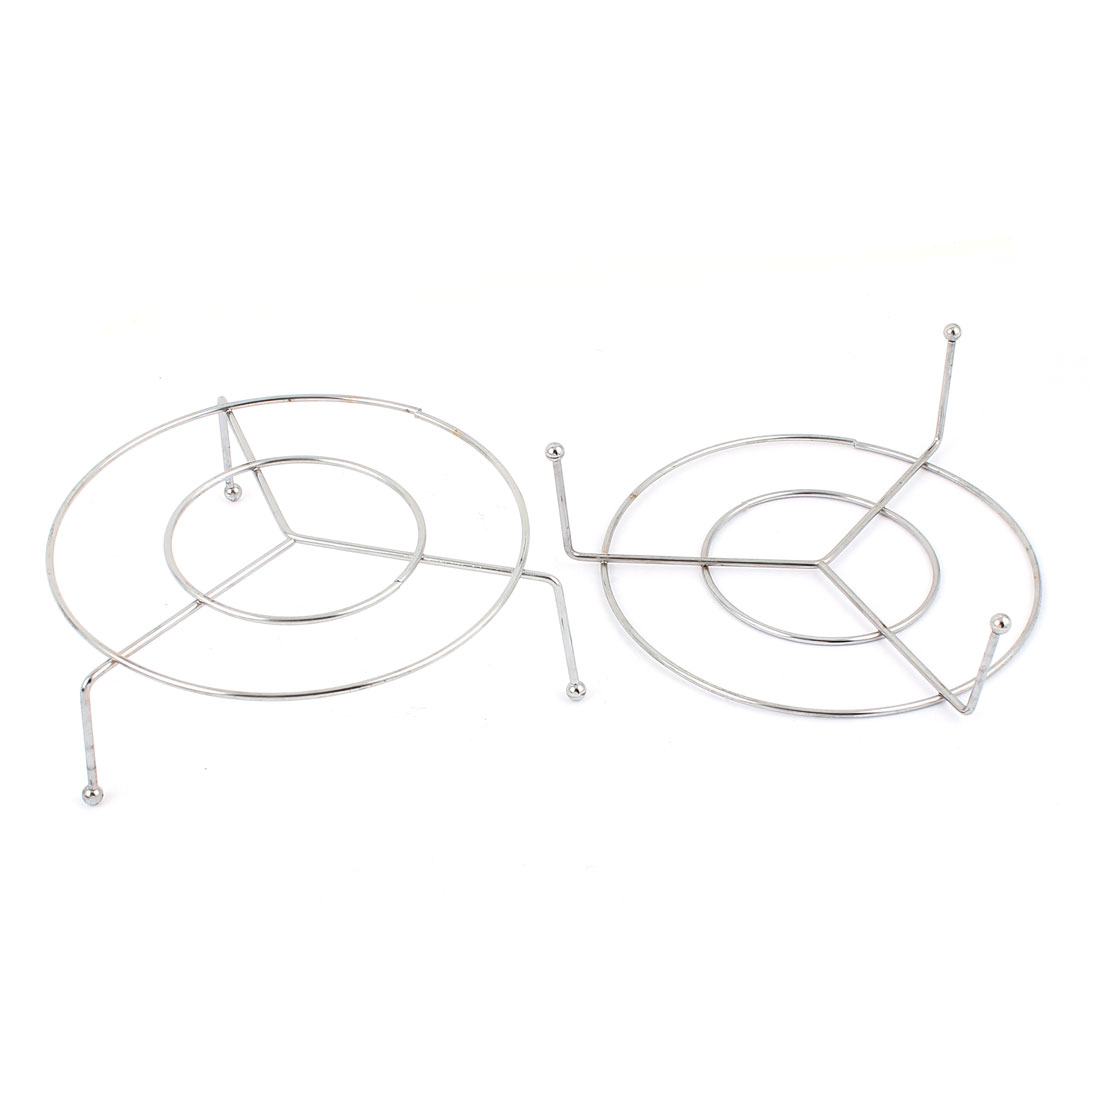 Household Kitchen Metal Wire Round Cooking Ware Steaming Rack Stand 11cm Diameter 2pcs Silver Tone